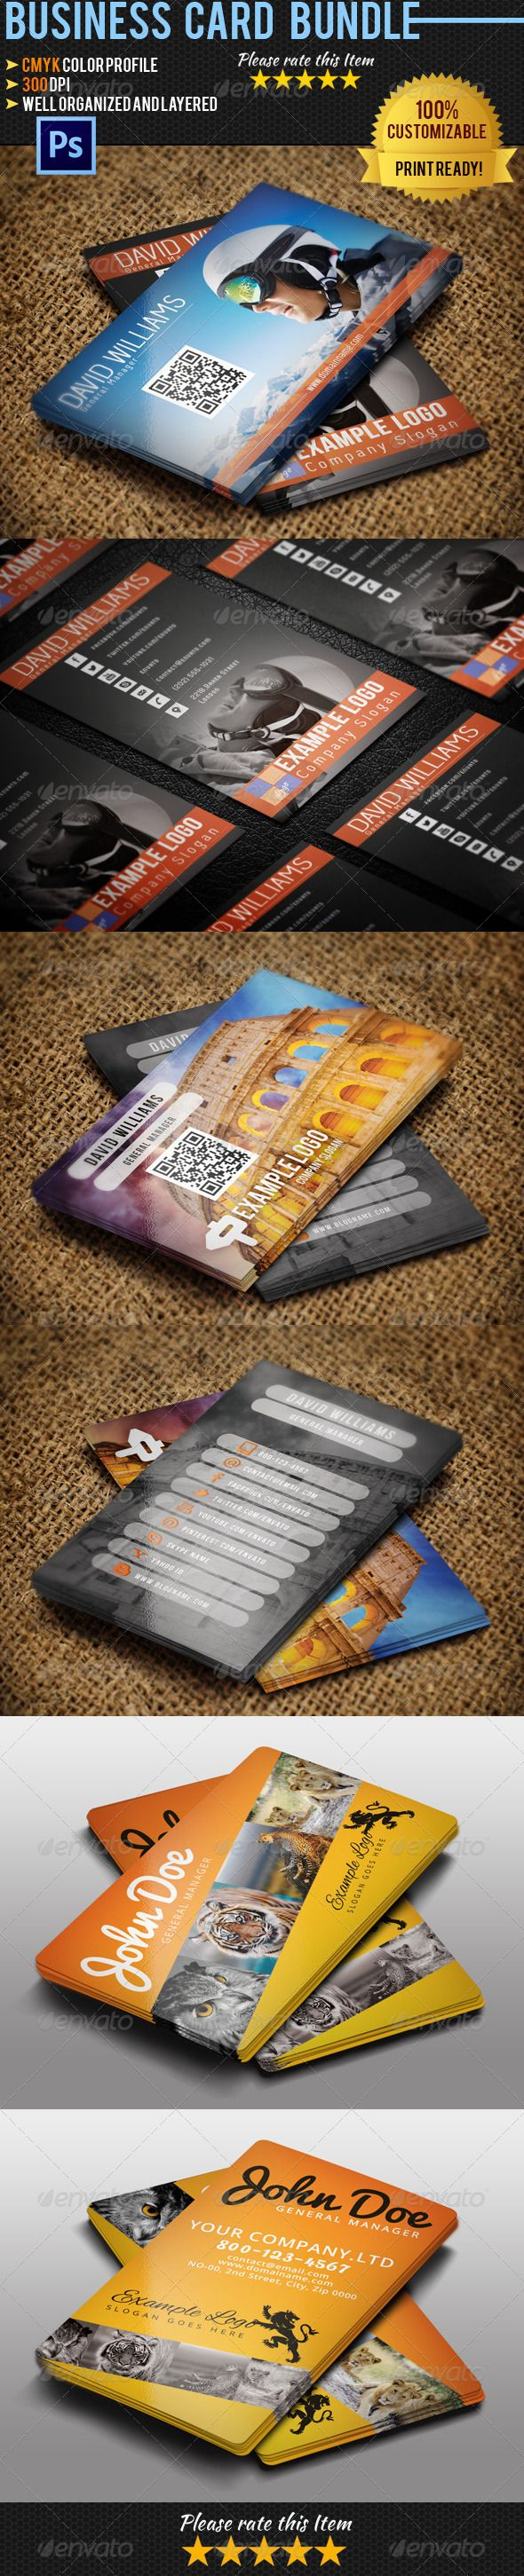 Travel business card bundle business cards and card templates travel business card bundle magicingreecefo Choice Image